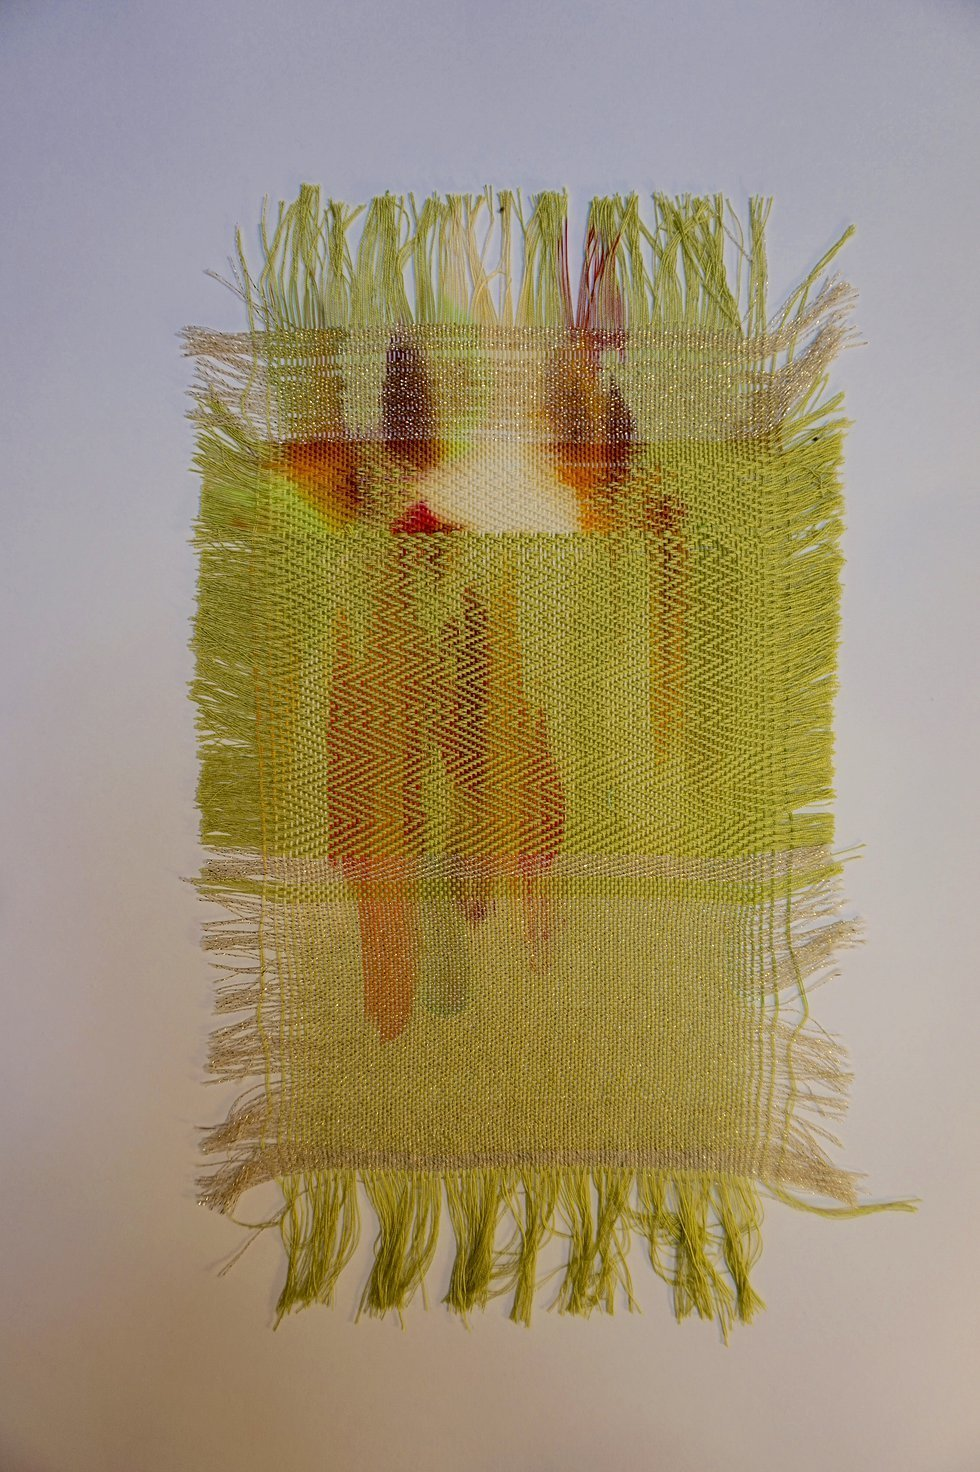 5 Textile Artists That Make Weaving Cool Again